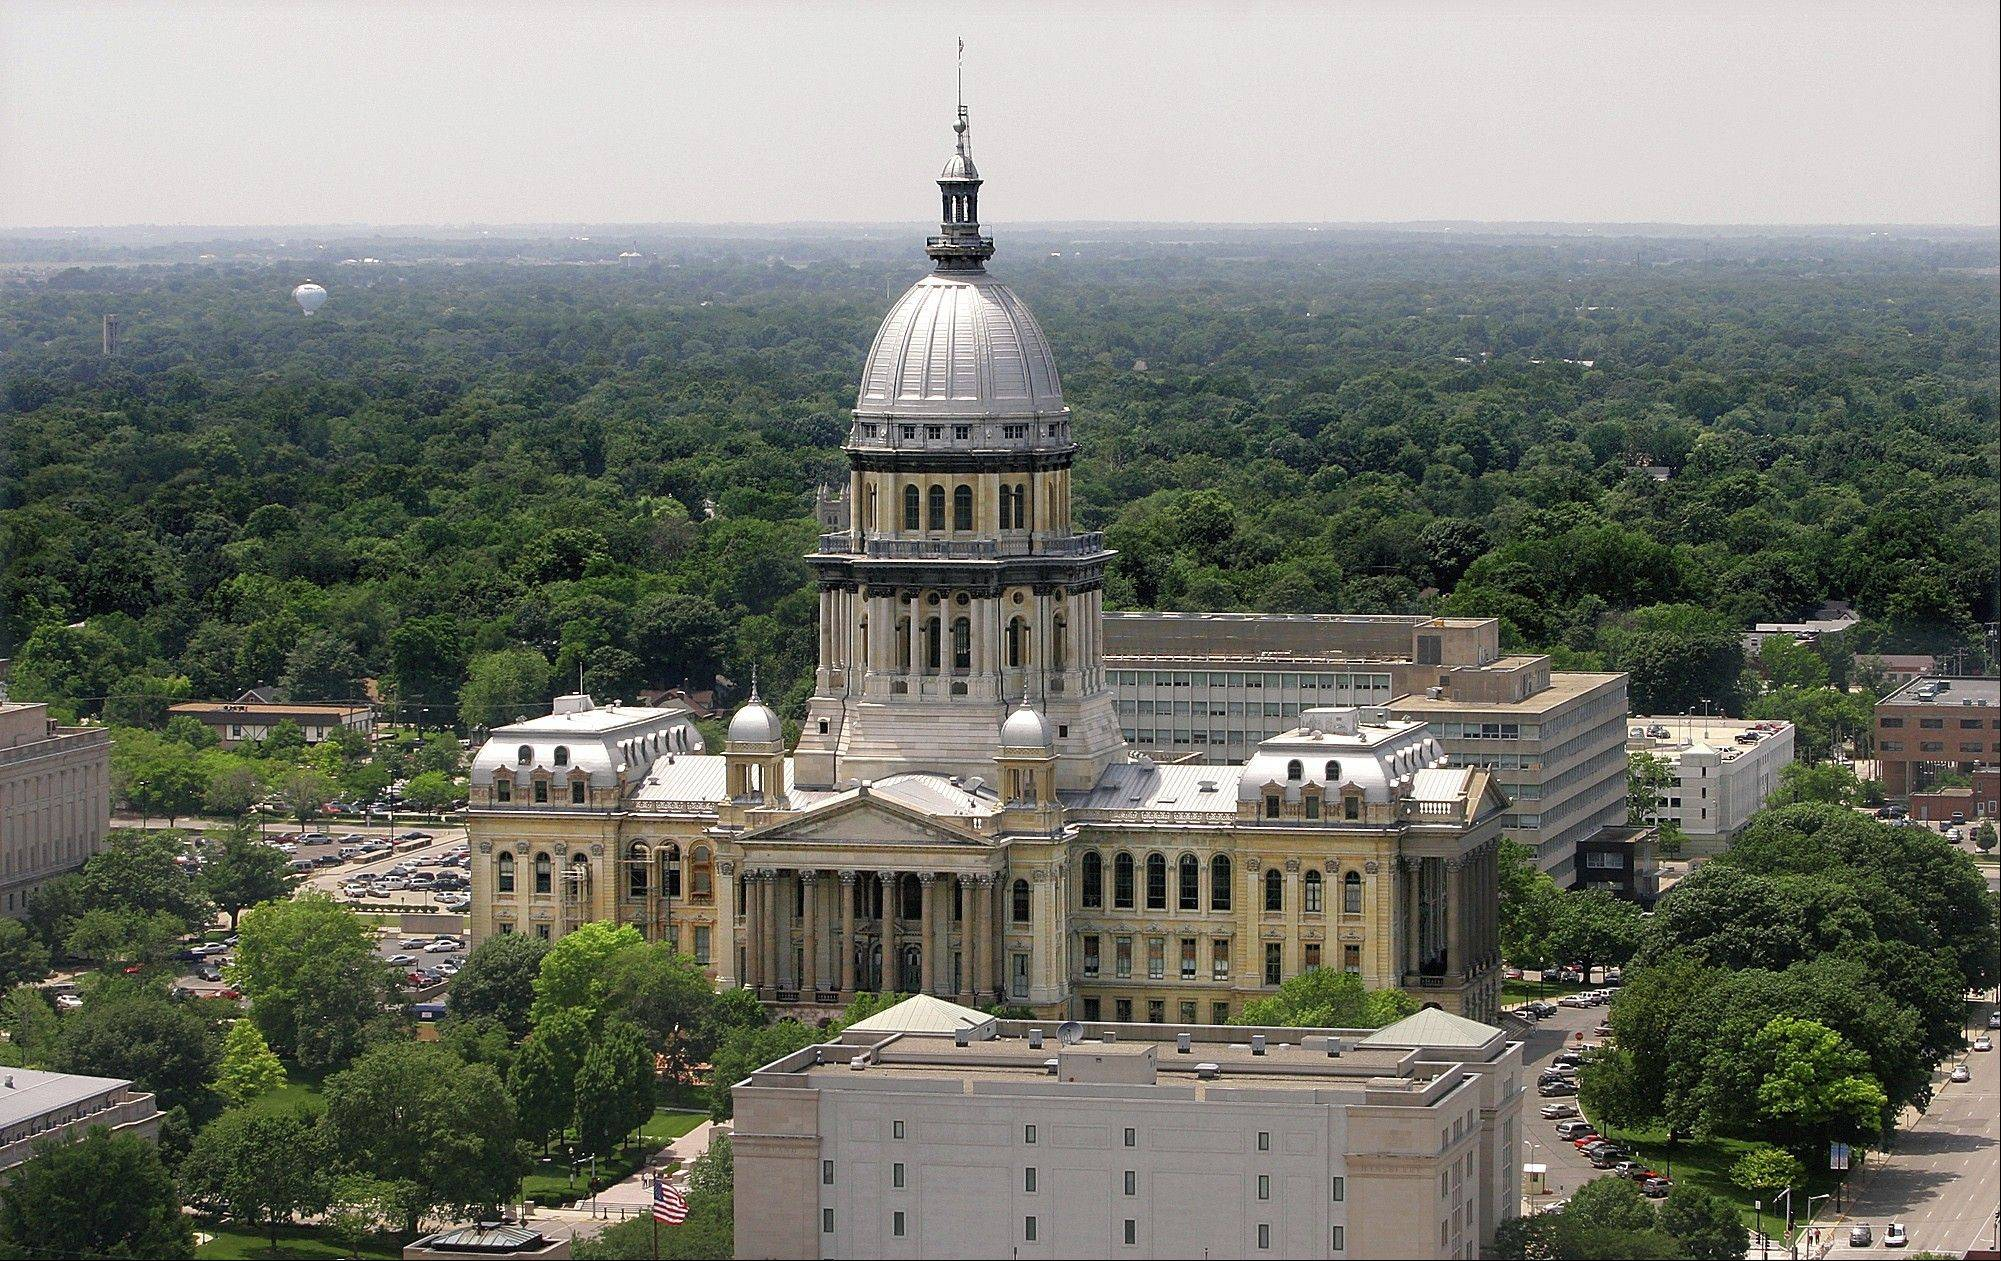 Lawmakers return to the Capitol Wednesday, and suburban officials will be at the forefront in dealing with the state's money woes.